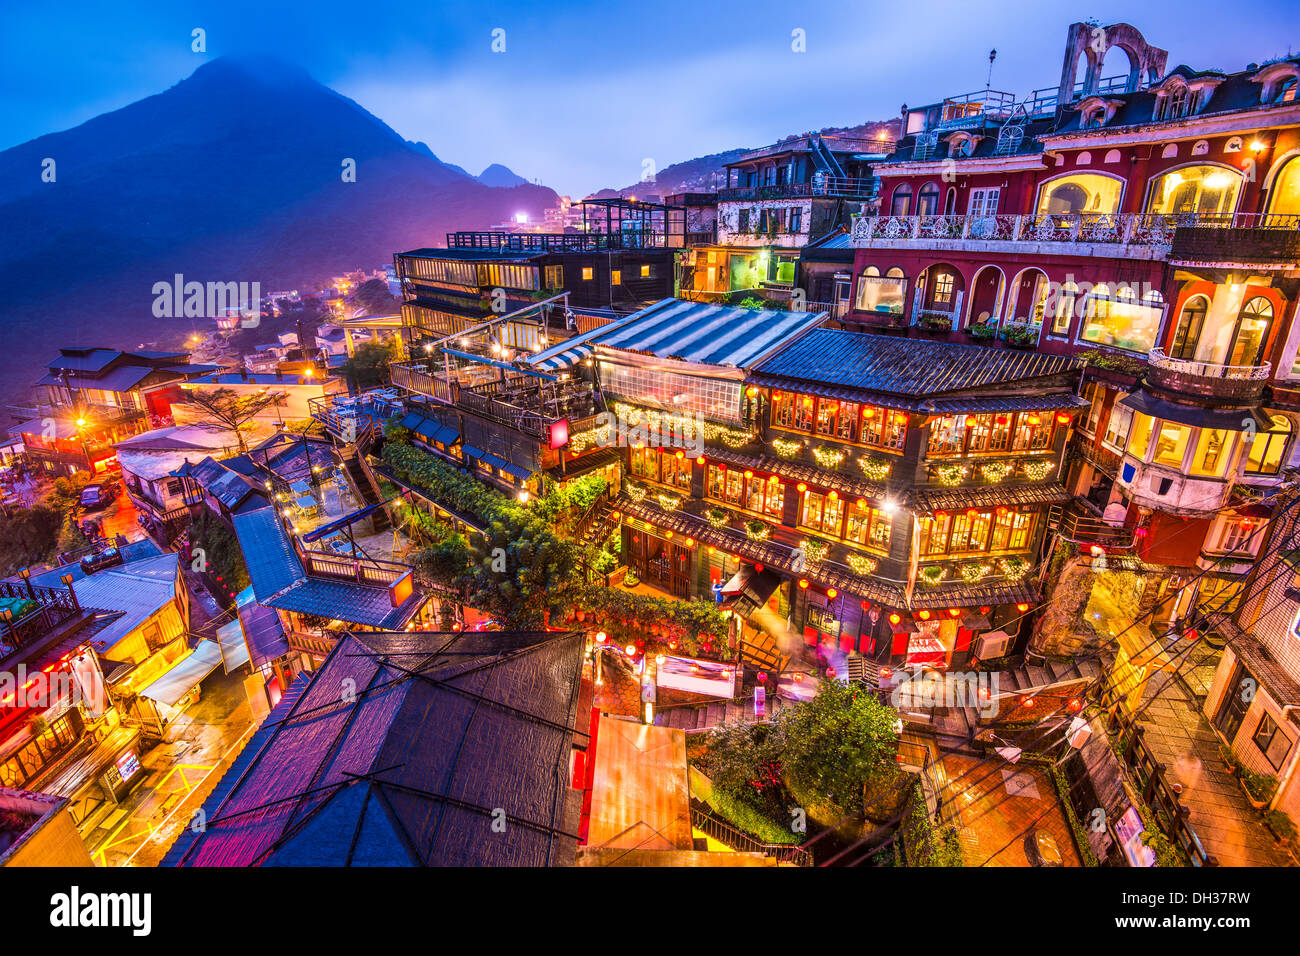 Hillside teahouses in Jiufen, Taiwan. - Stock Image